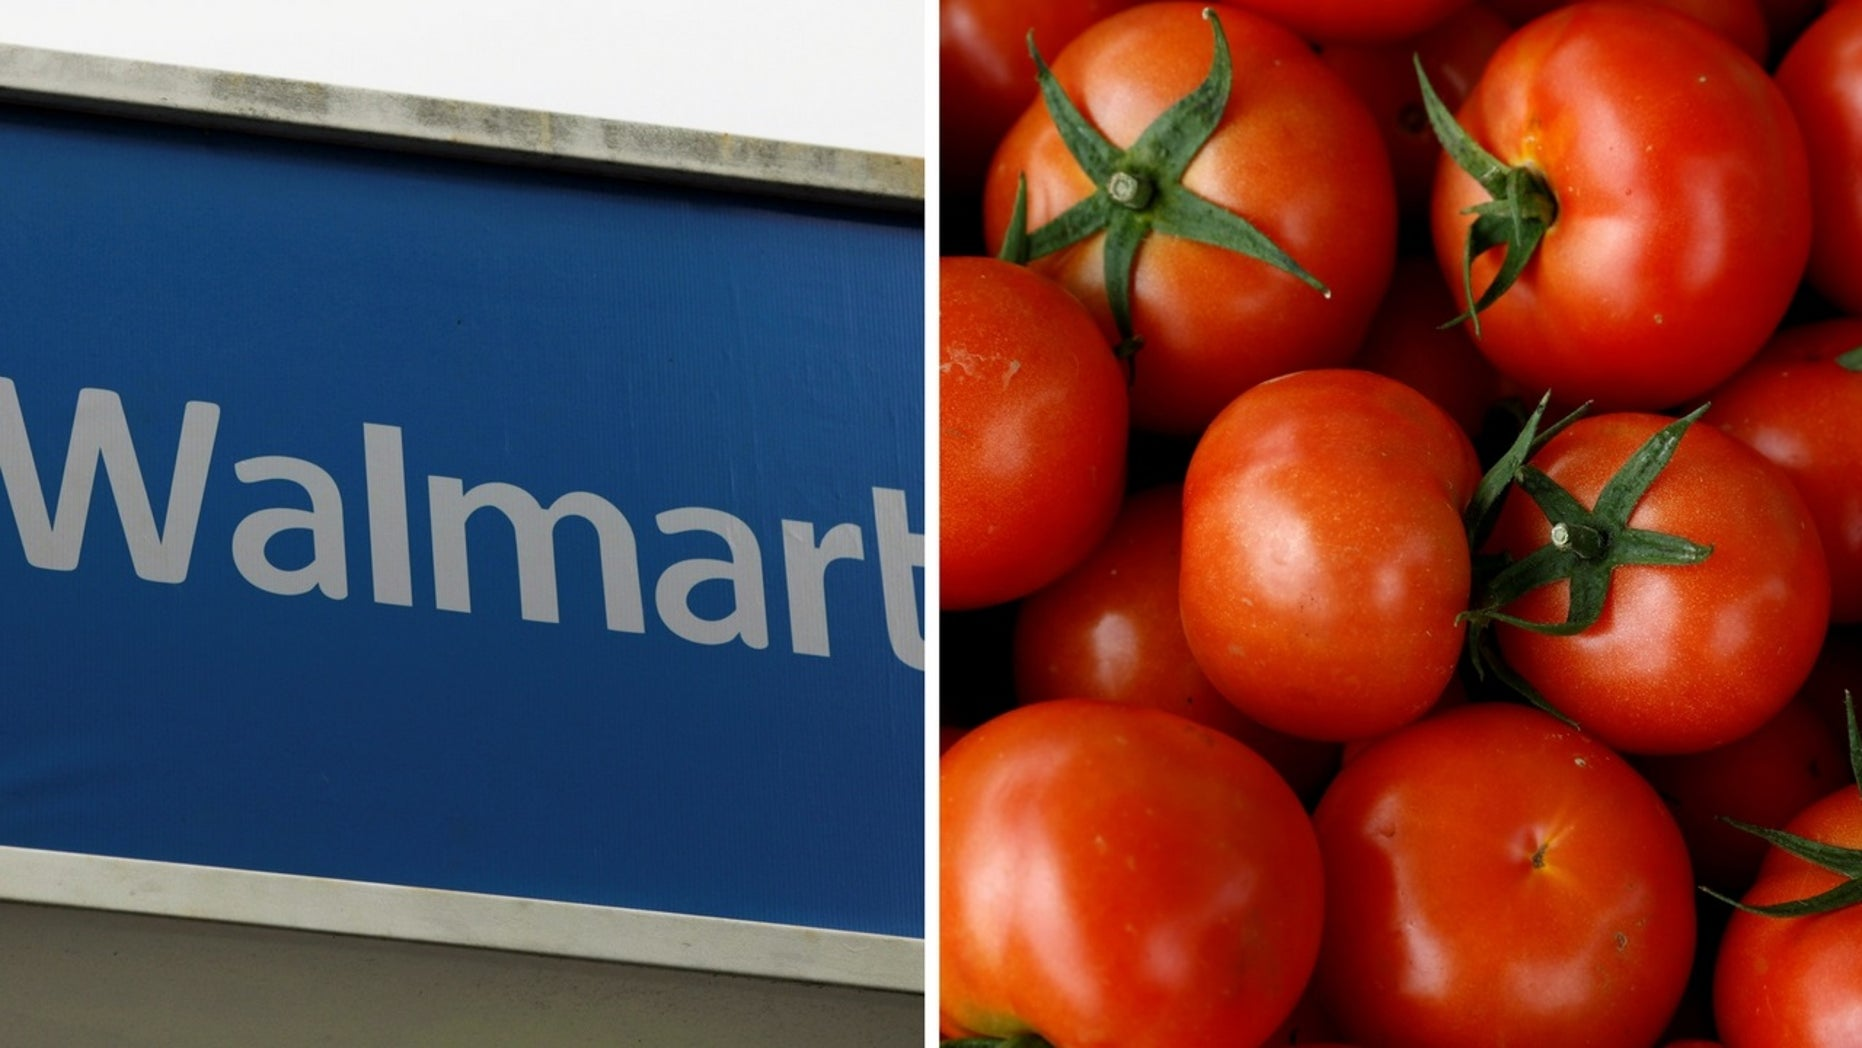 A former Atlanta police officer was sentenced to five years in prison after he wrongfully accused a man of stealing a tomato from a Walmart in 2014.